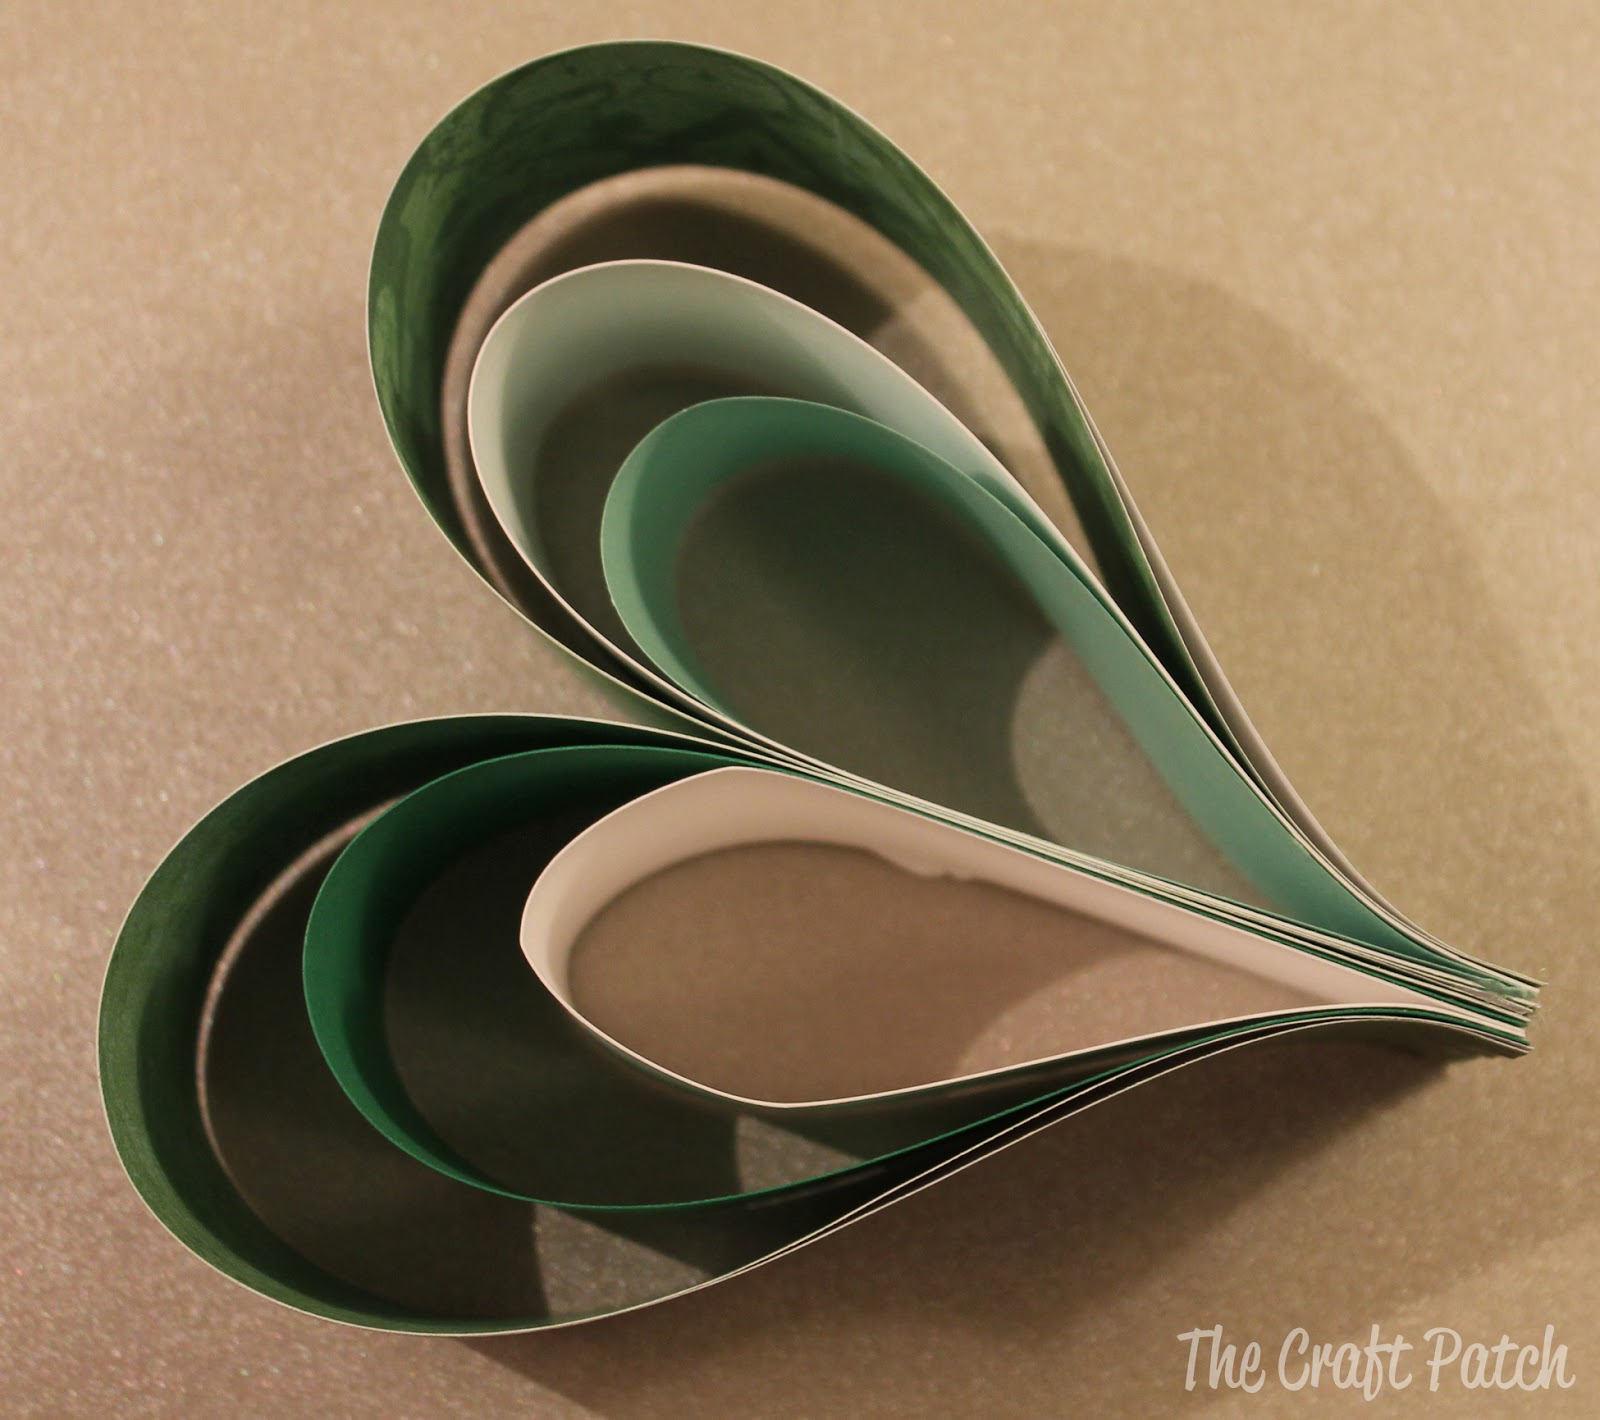 Dress Up Your Home For St. Patrick's Day by Making This Cute Wreath Out of Scrapbook Paper!5